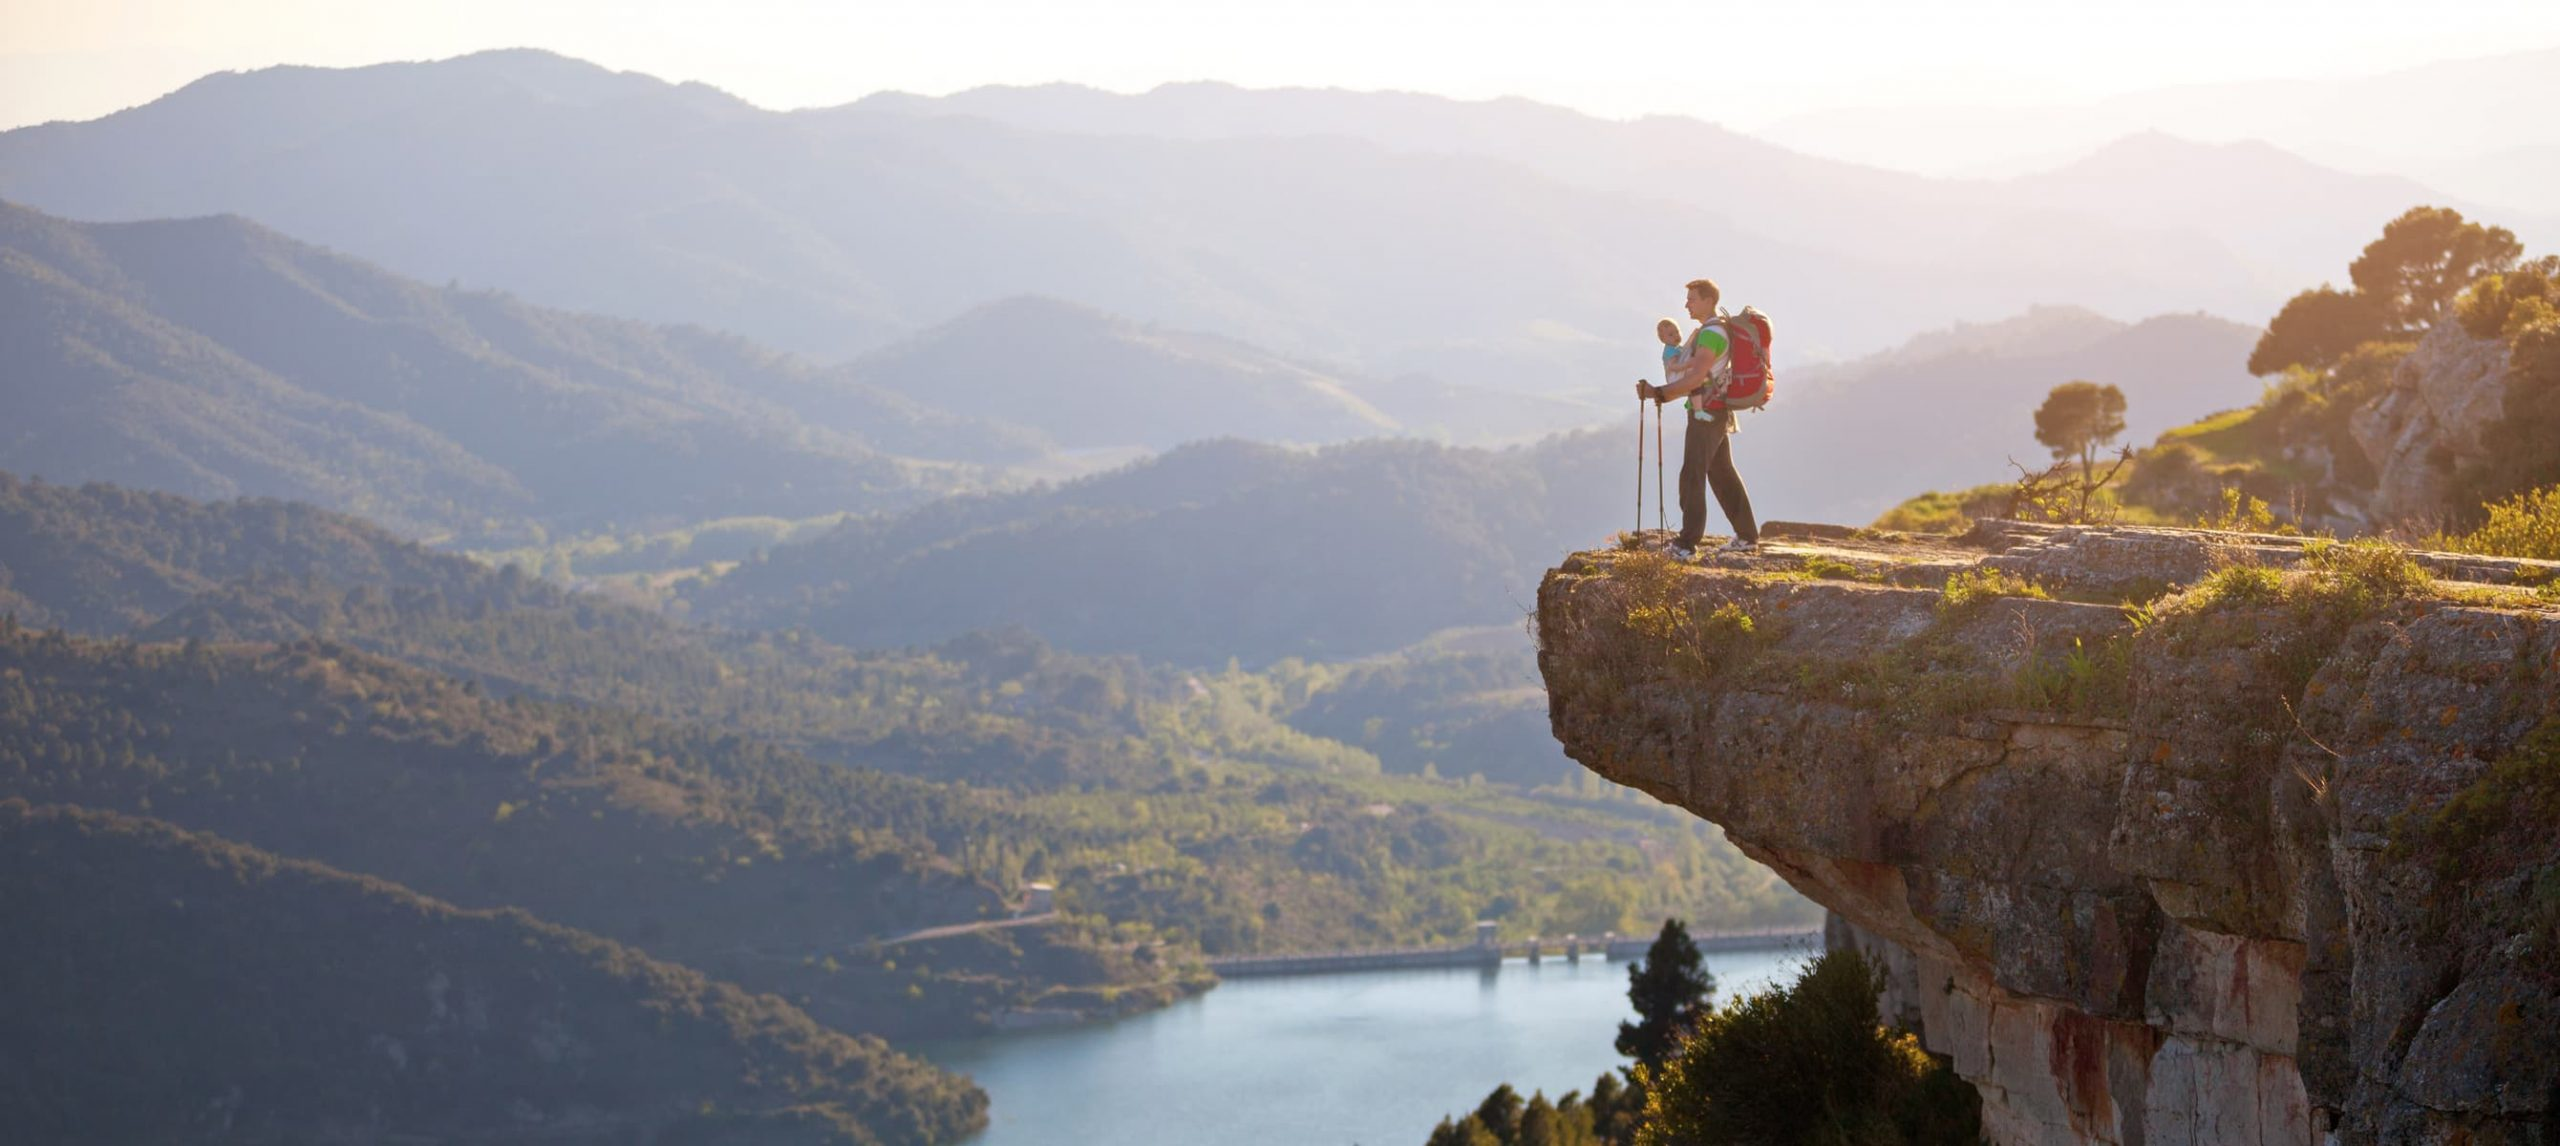 Adventure Travel In Spain: The Top Experiences For Adrenaline-Seekers